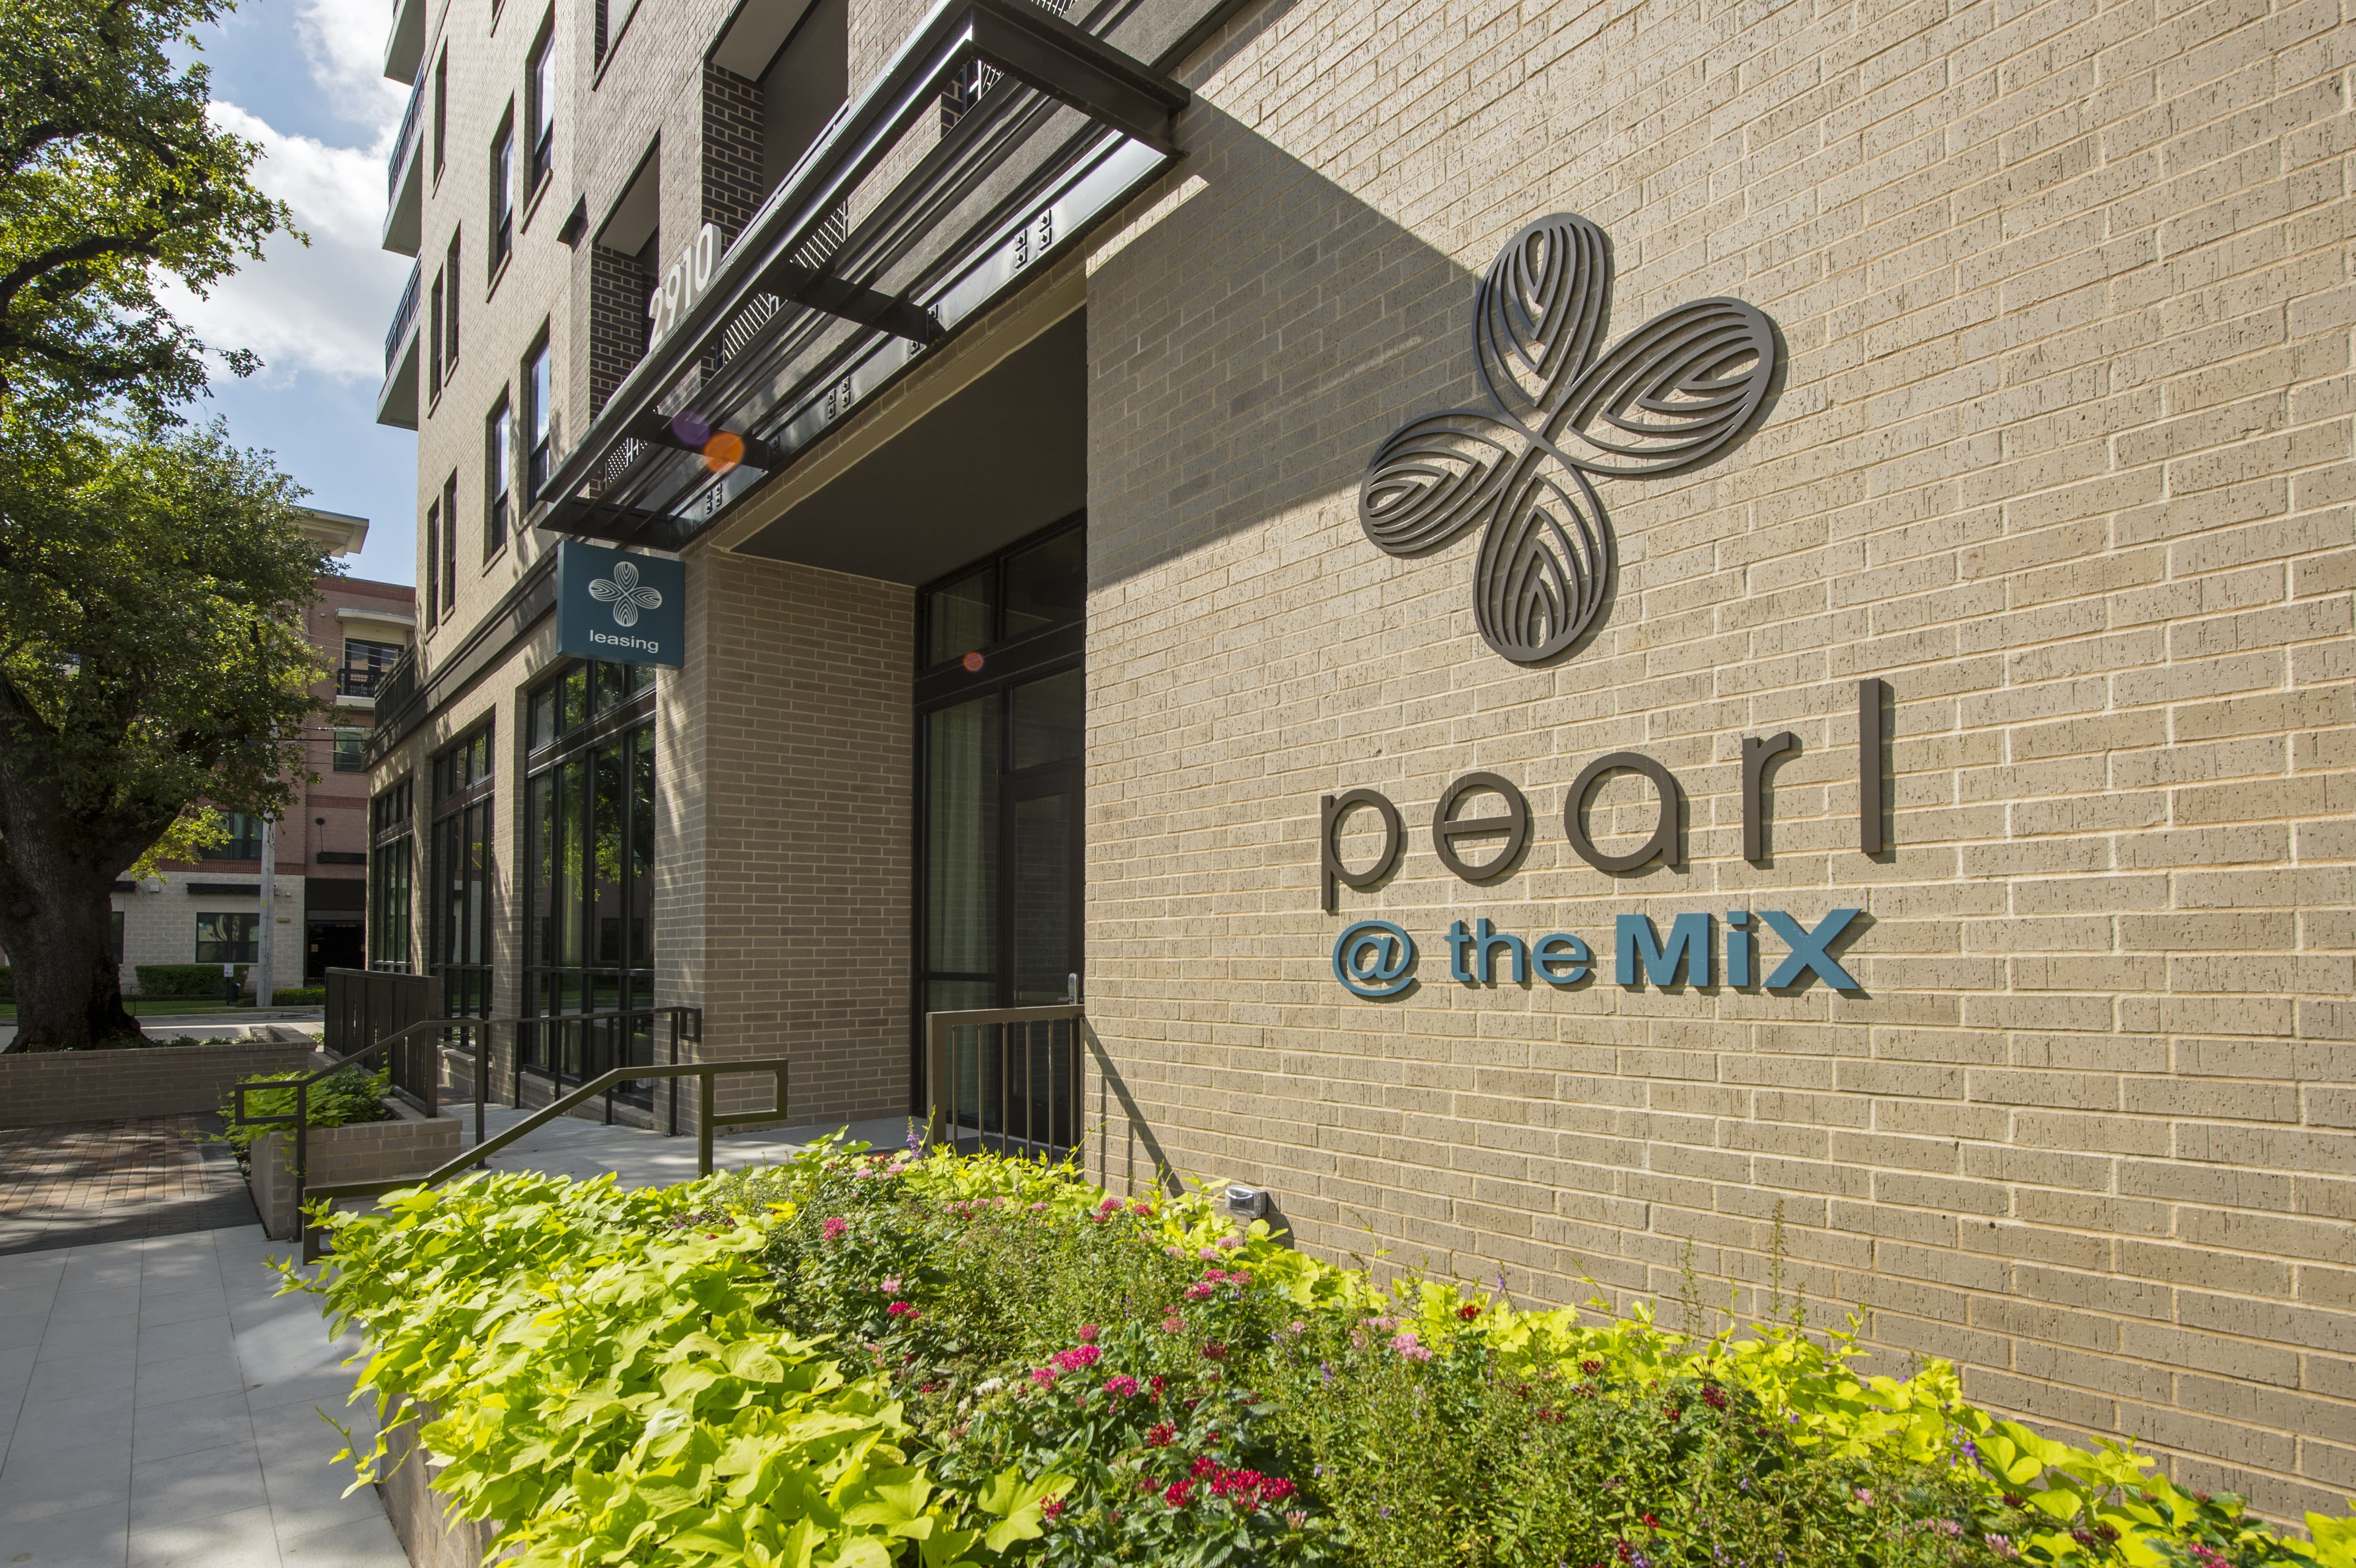 Pearl at the Mix